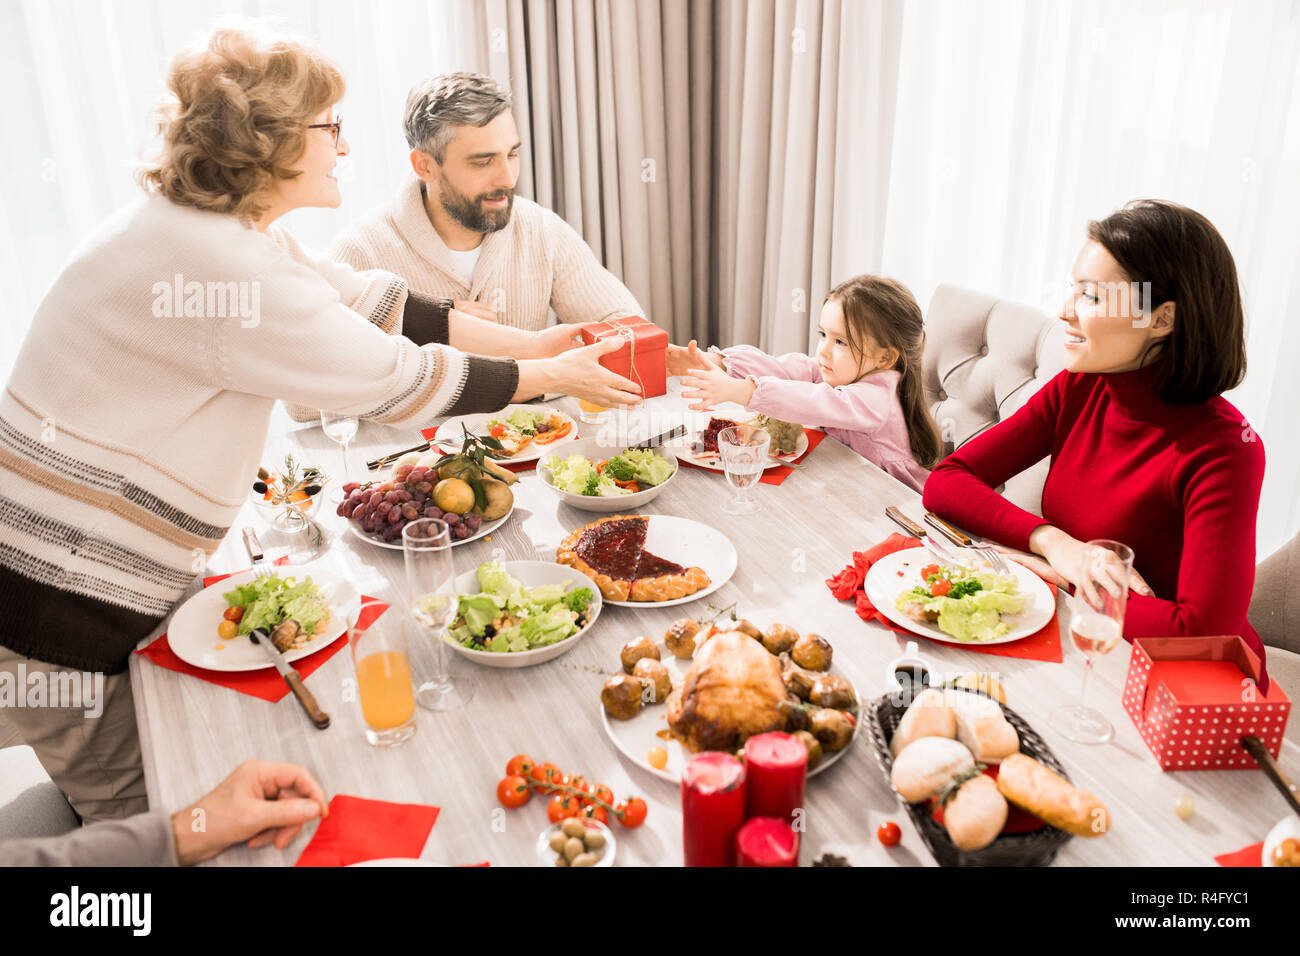 Family Exchanging Presents over Table - Stock Image